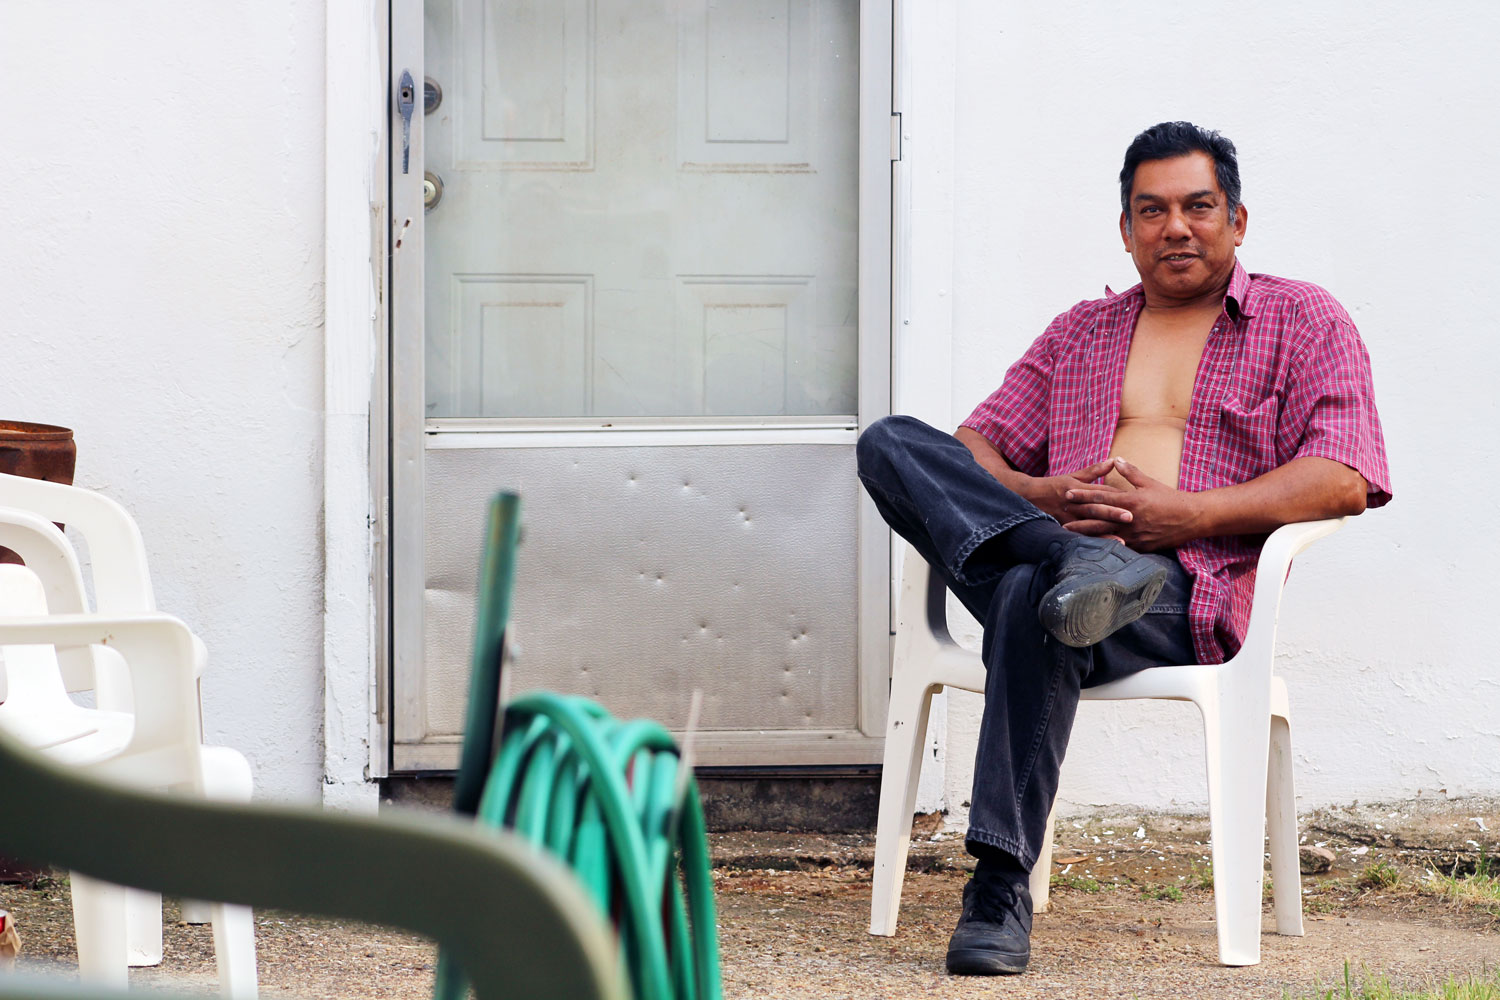 Pete Hernandez relaxes on a neighbor's porch in May 2017. Hernandez has lived in West Dallas his entire life. His property value recently skyrocketed, leaving him with a tax bill that almost tripled in one year.